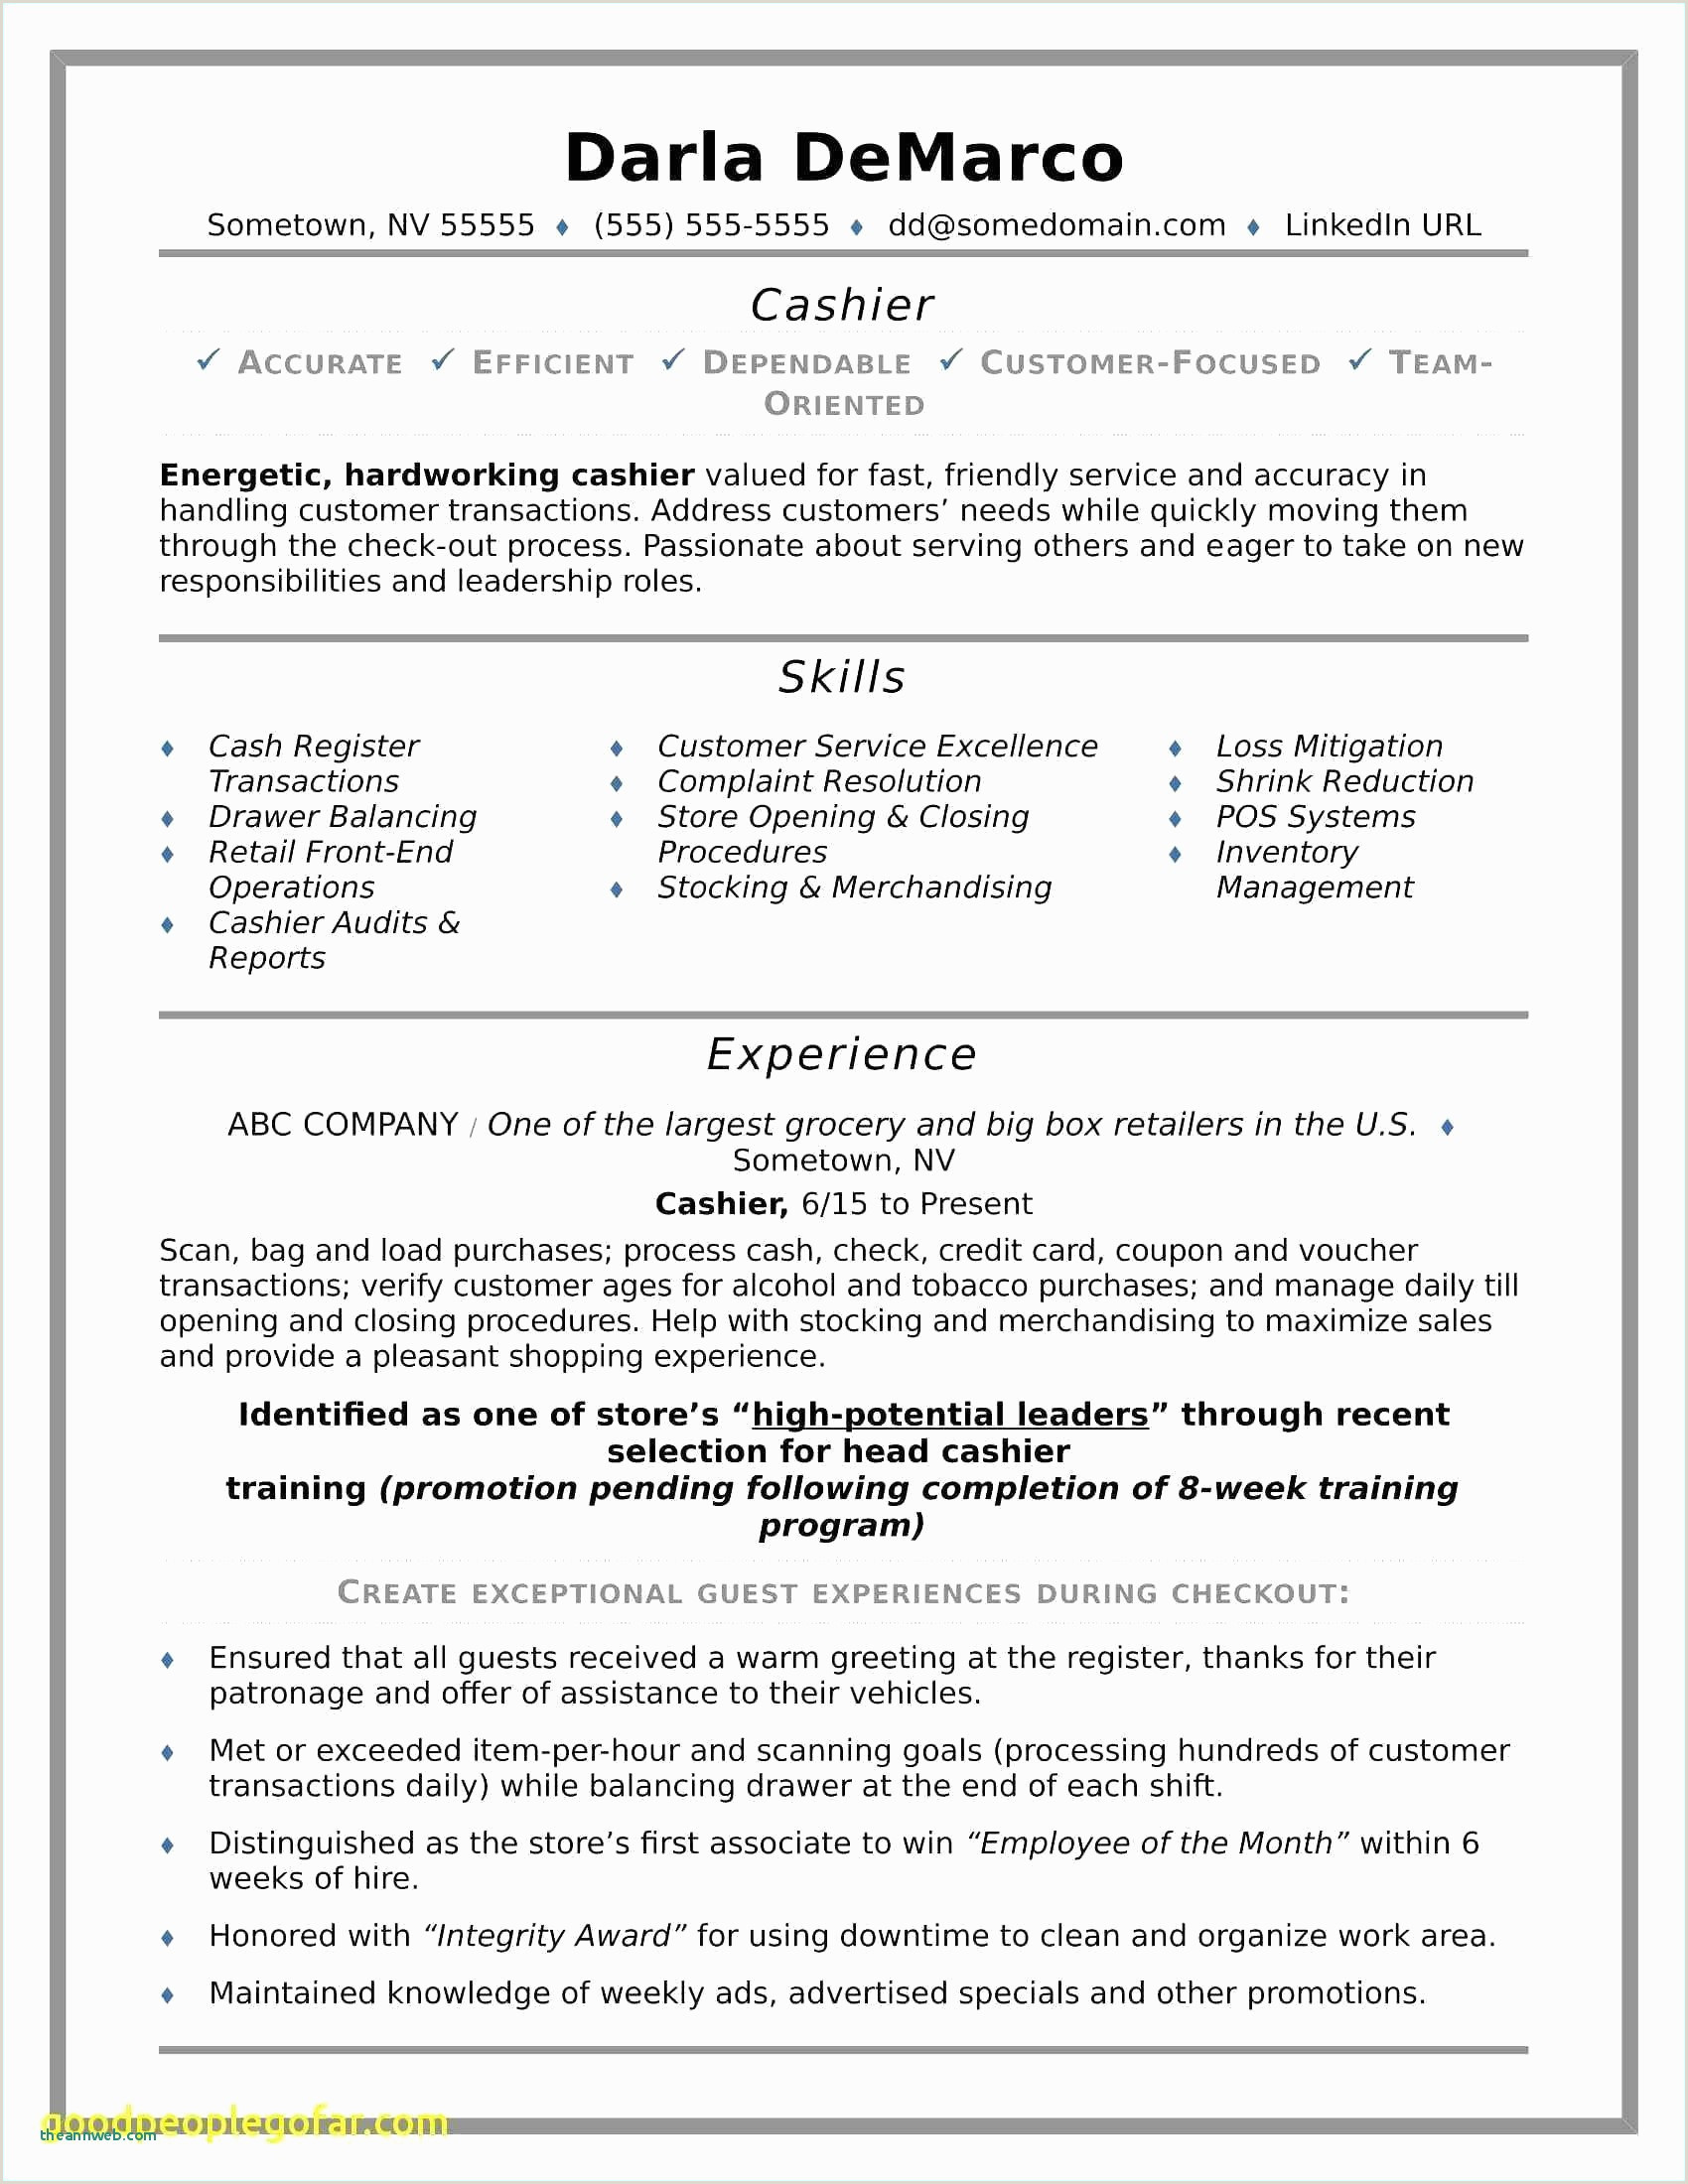 Resume format for Job New Simple Resume format Free Easy Resume Template Simple Job